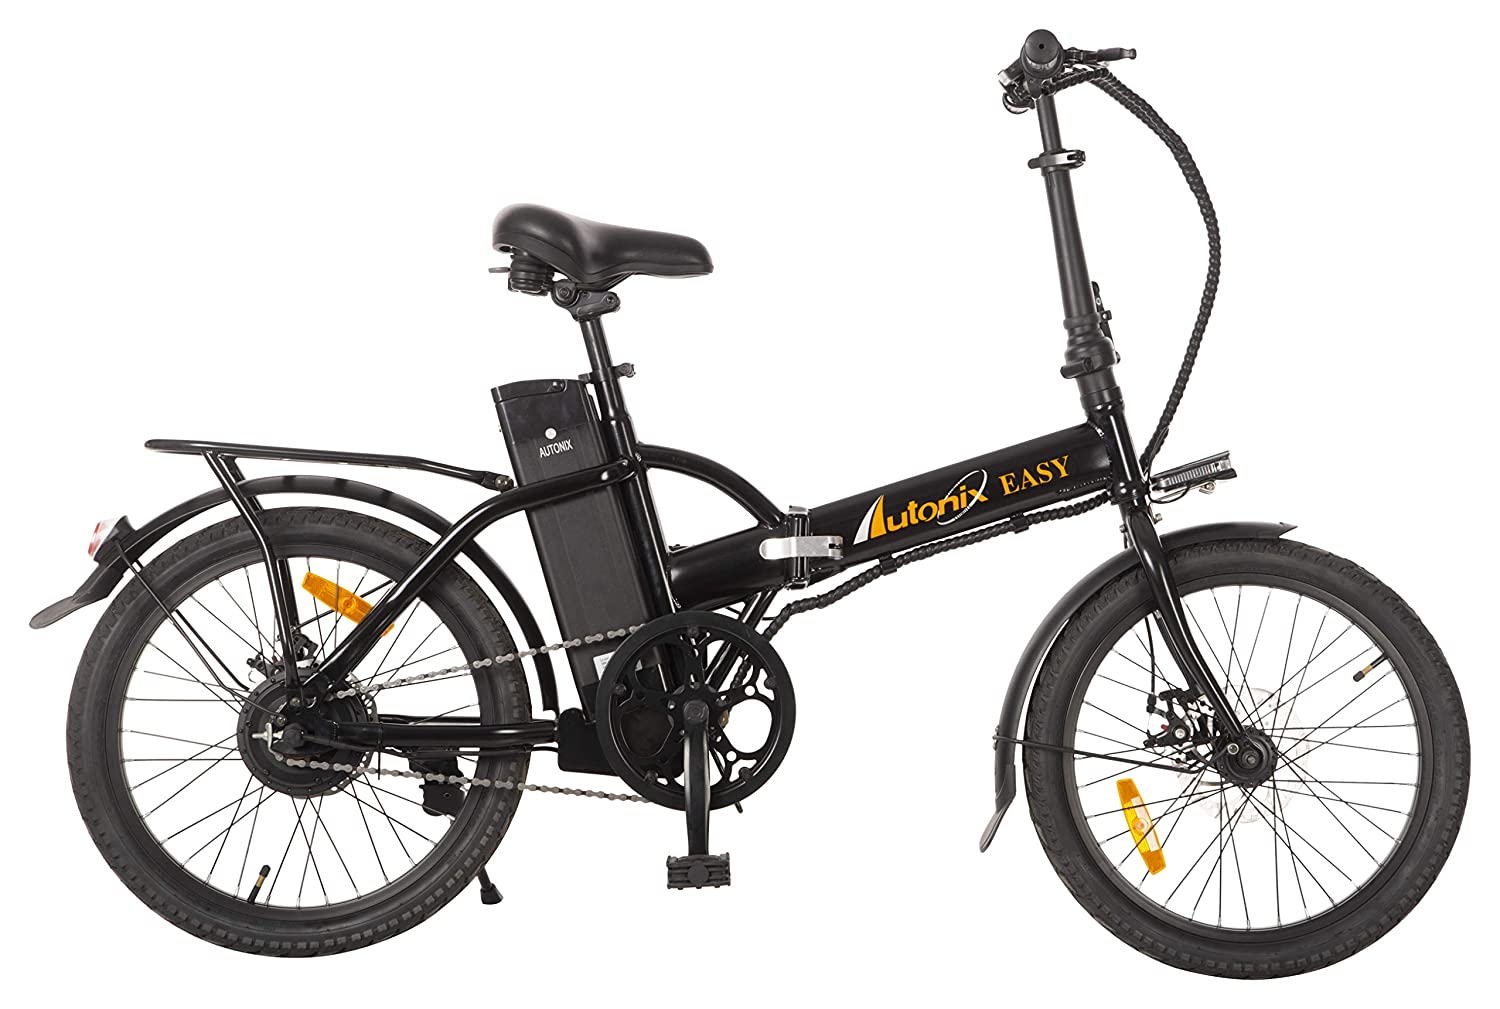 AUTONIX EASY E-BIKE